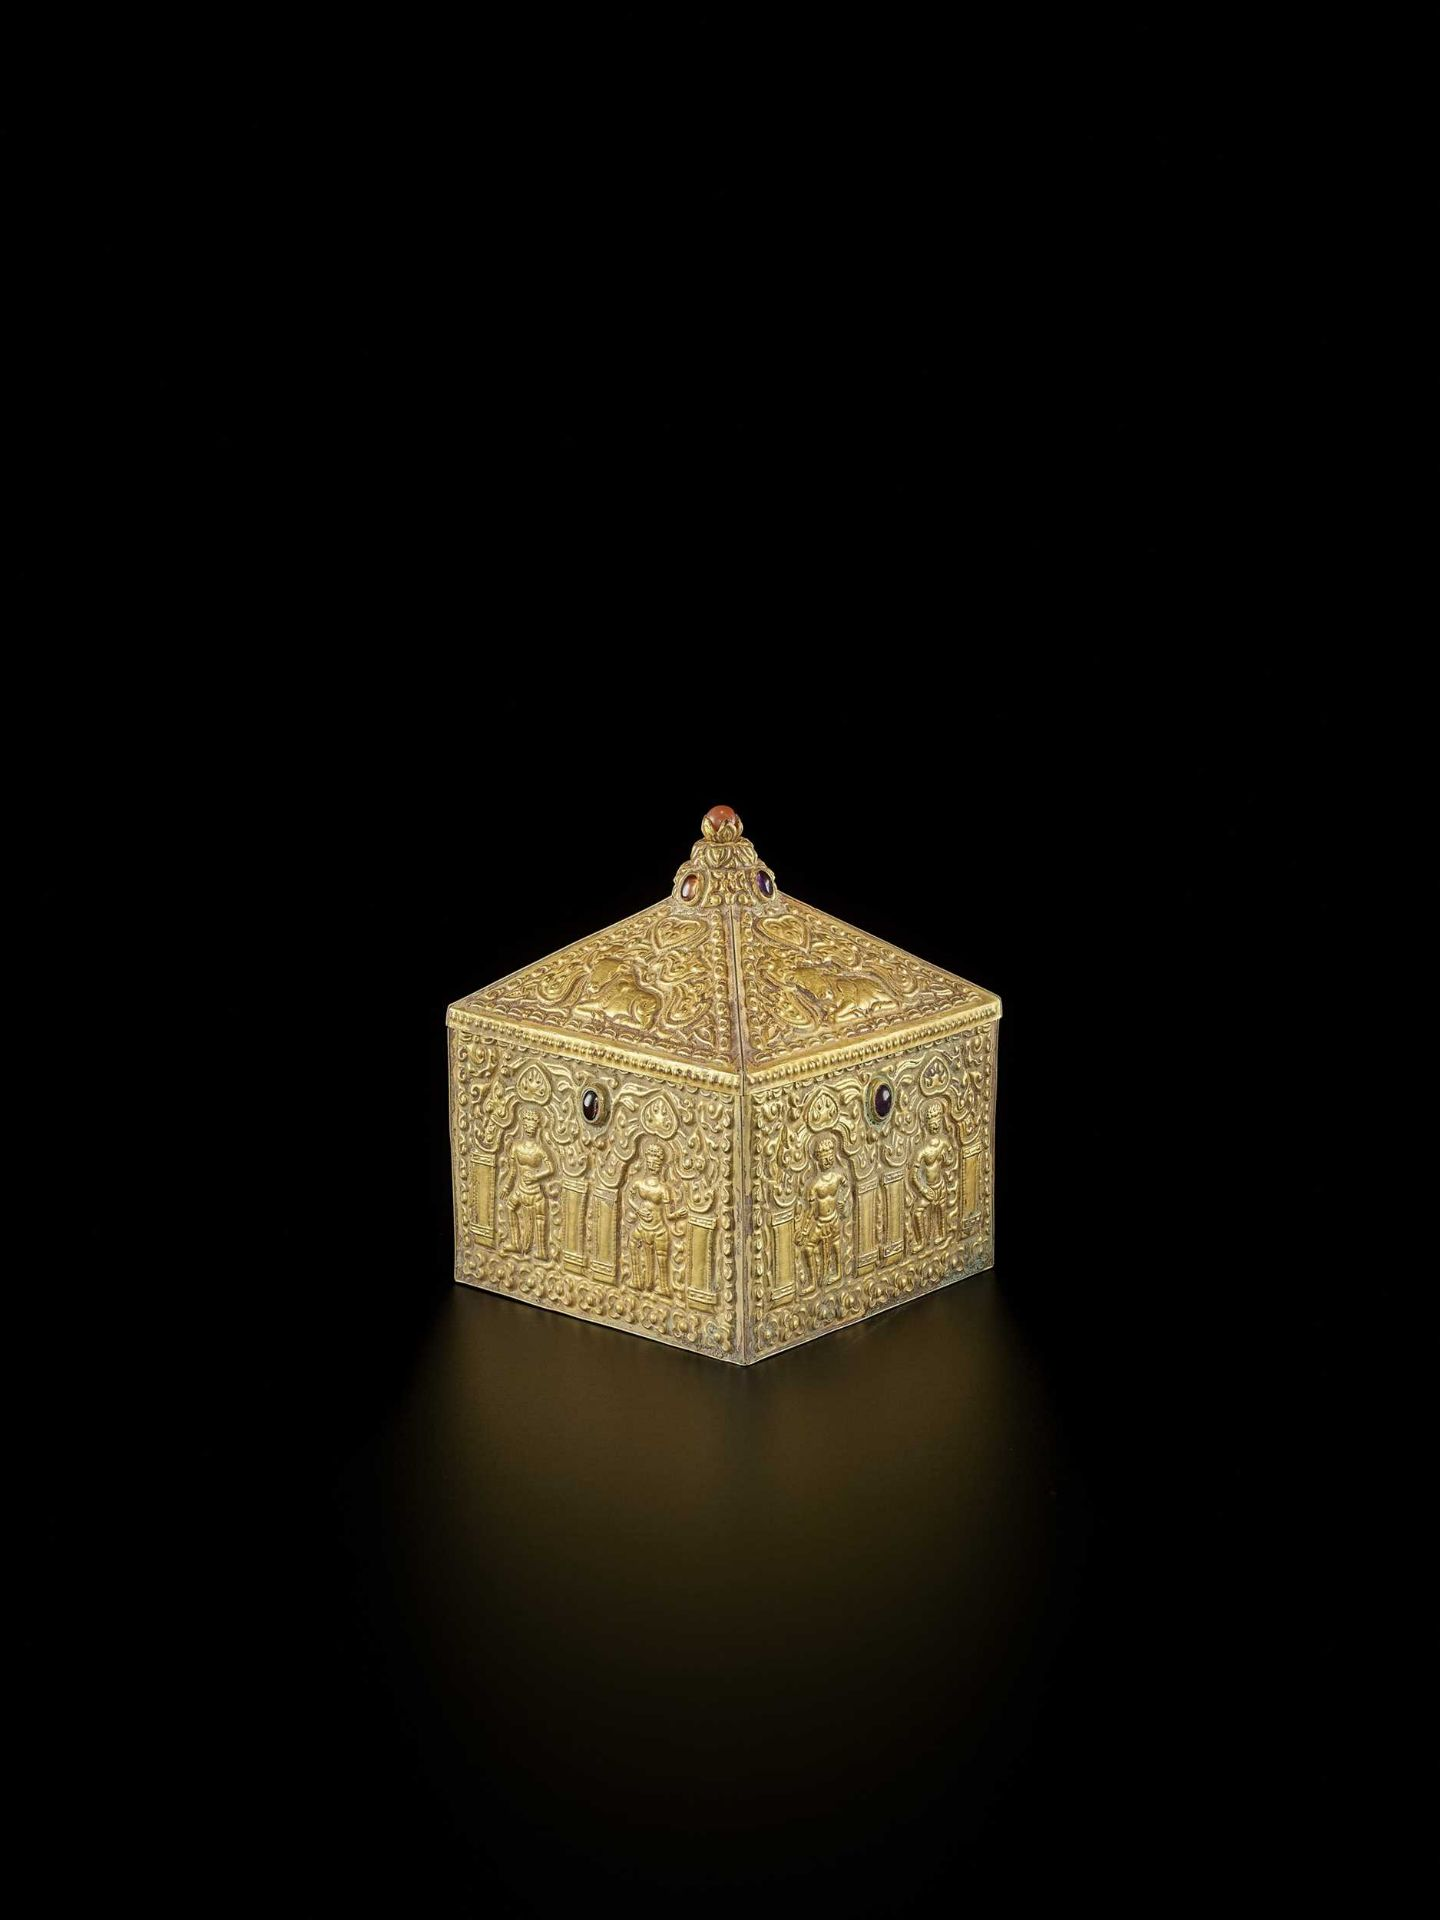 A FINE AND EXTREMELY RARE GEMSTONE-SET CHAM GOLD REPOUSSÉ BOX AND COVER - Bild 10 aus 10